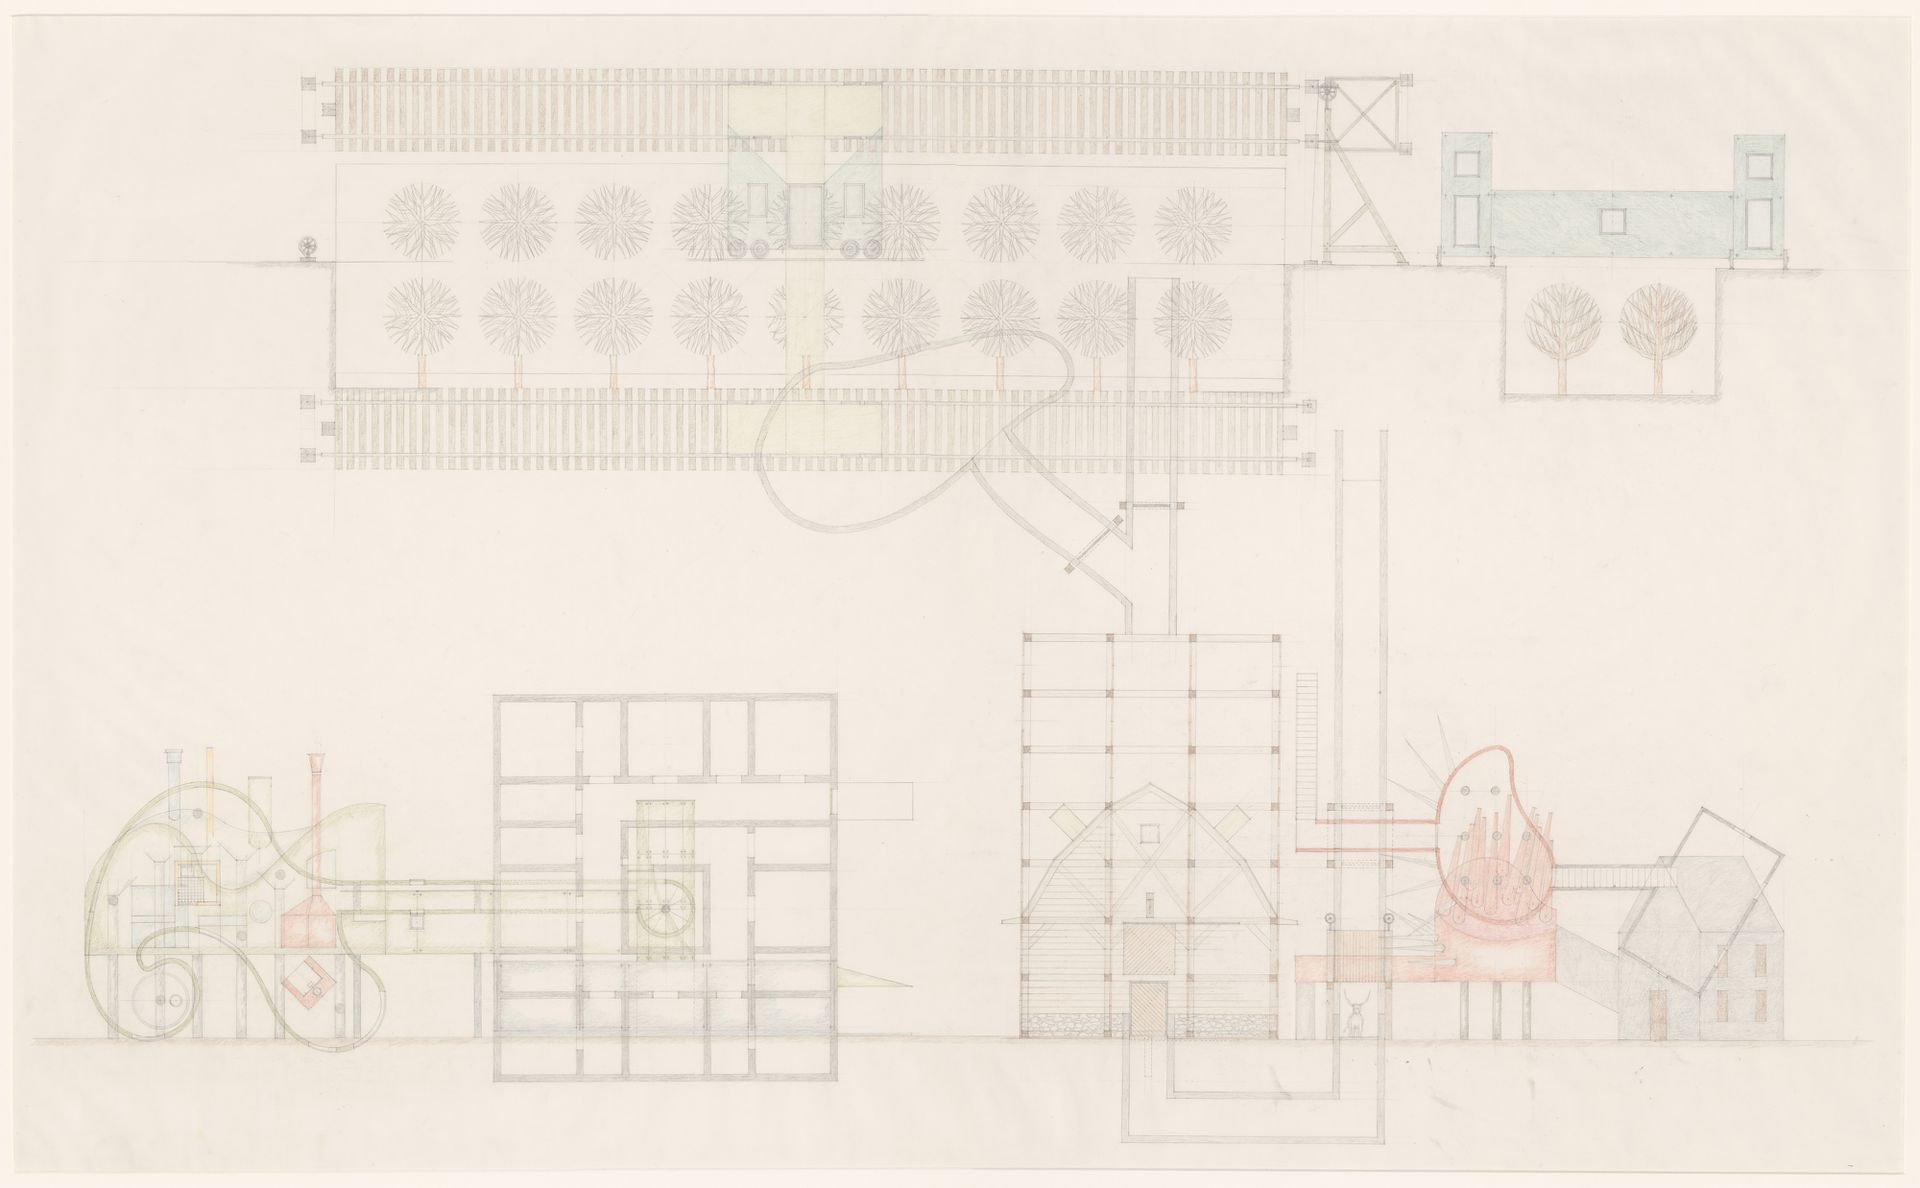 The Lancaster Hanover Masque Hospital Wiring Circuit Diagram Animal Cross Over House And Collectors 1980 1982 Cca Dr19880291047